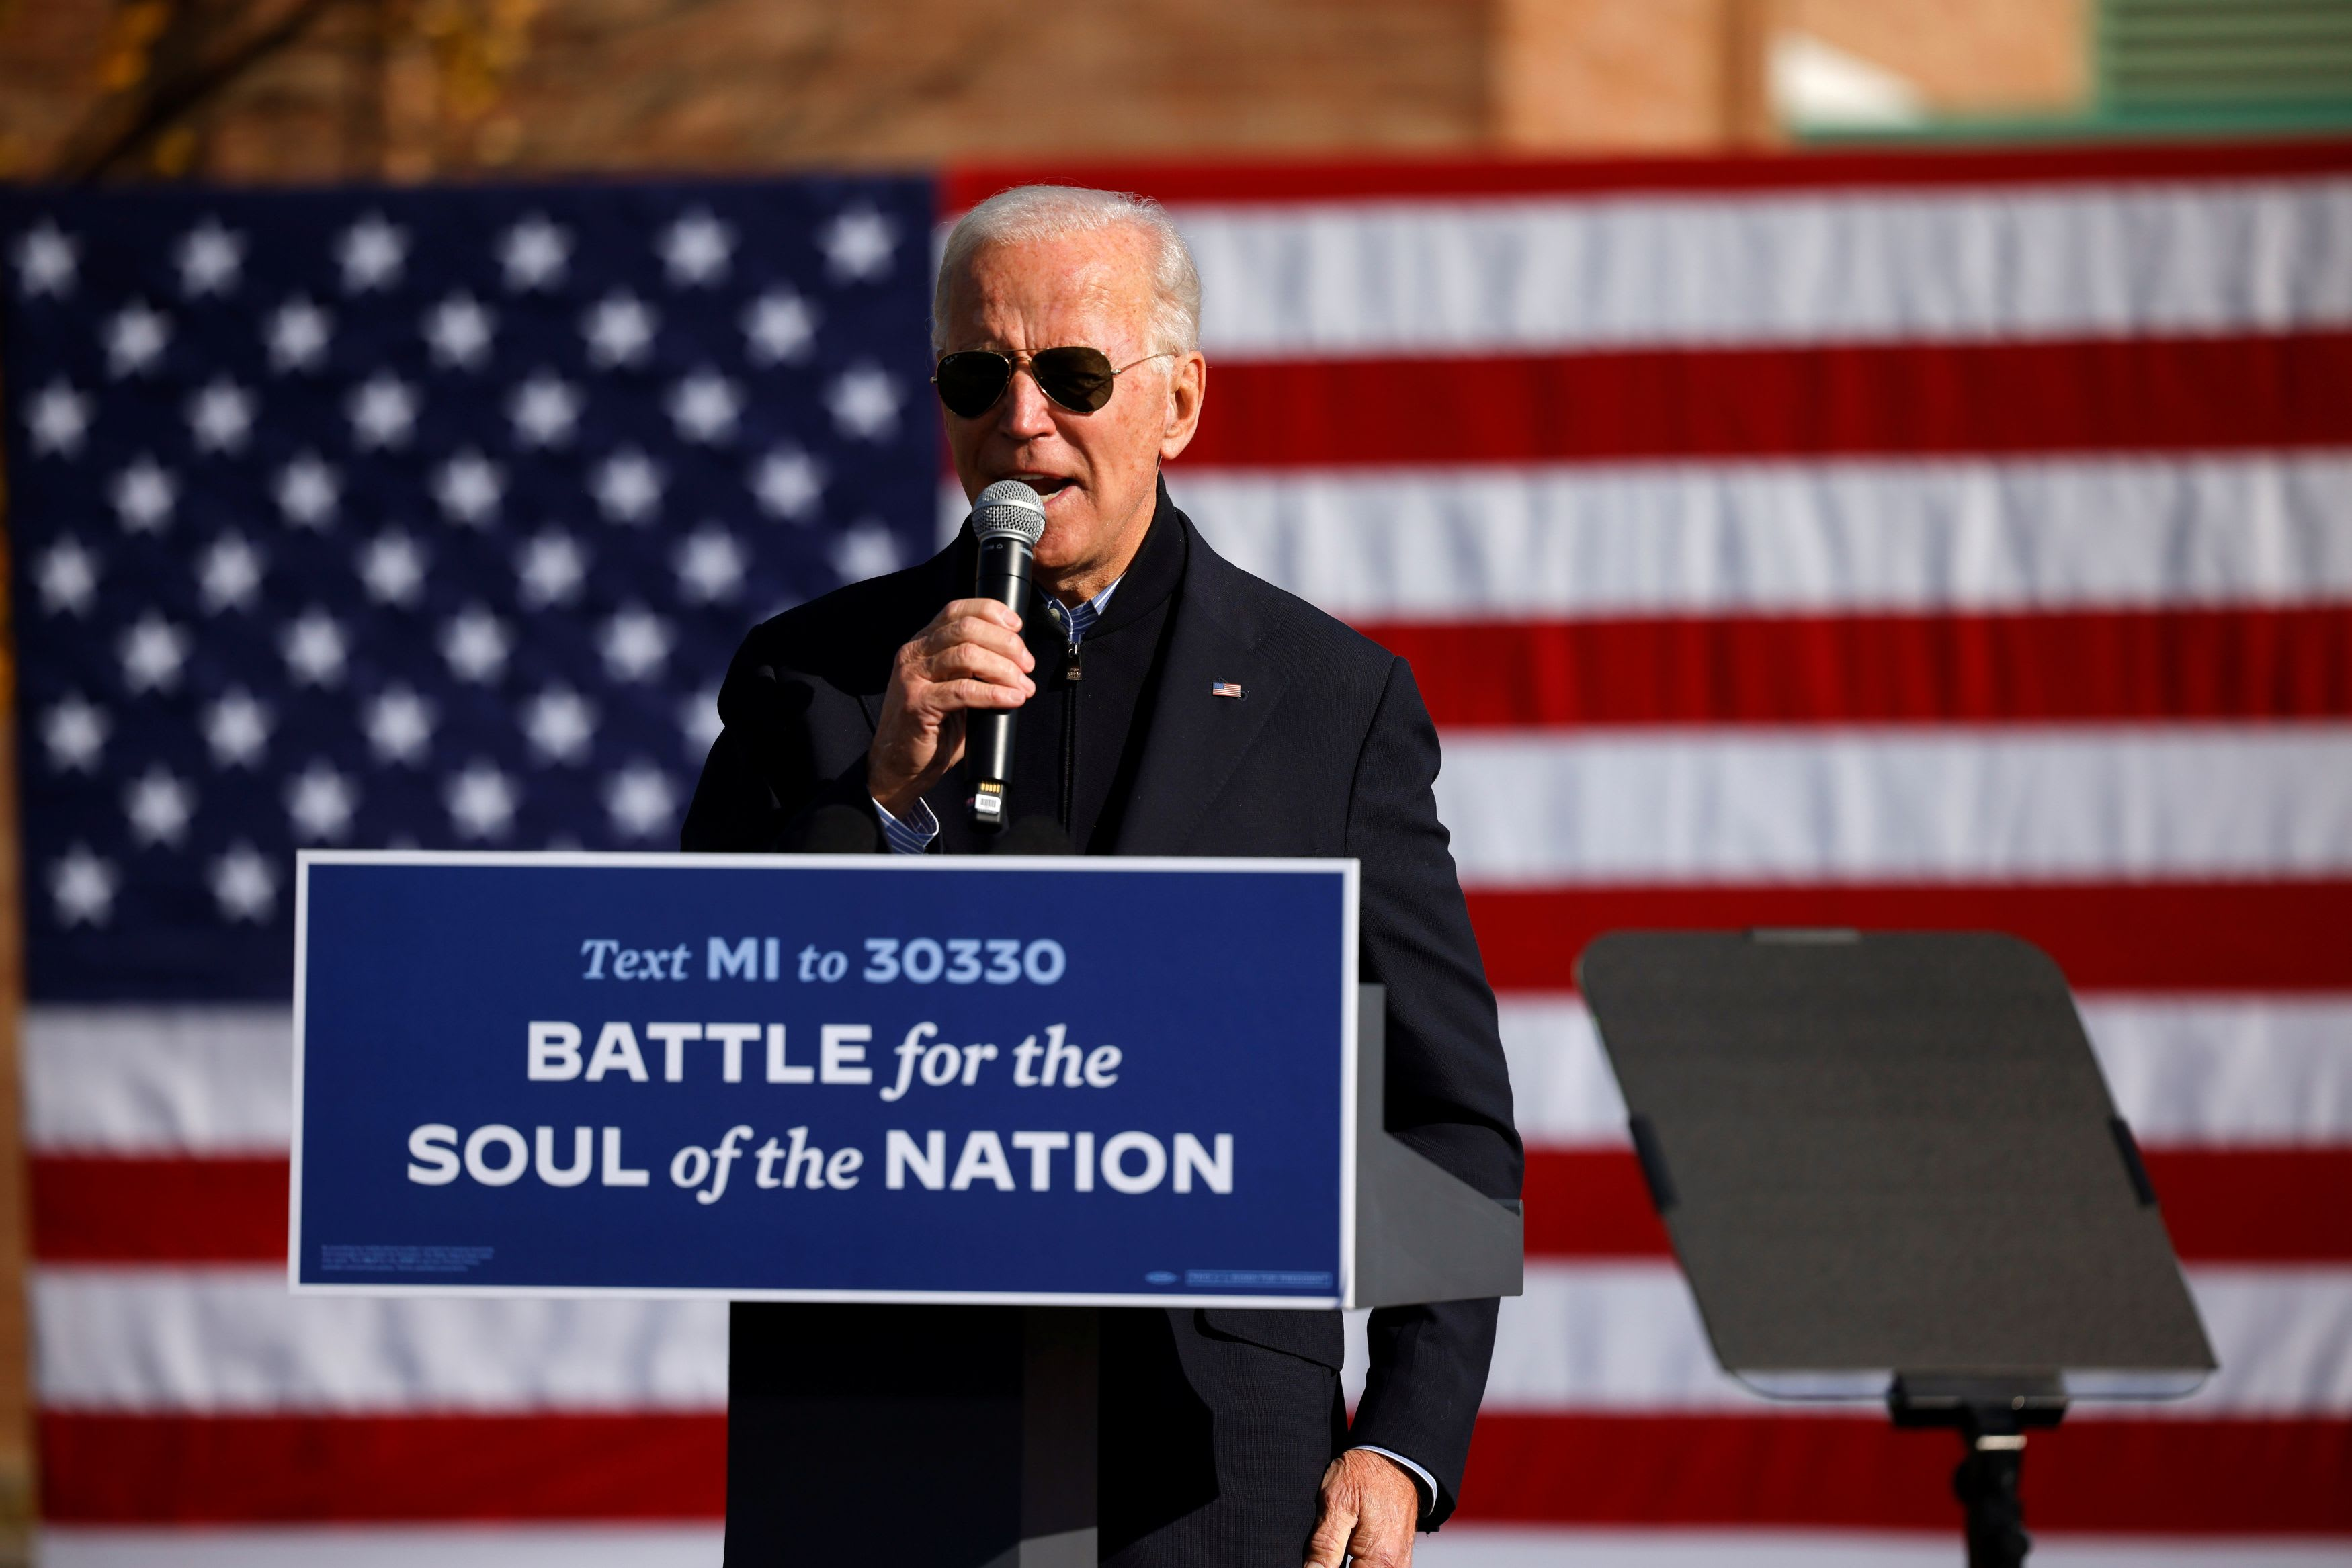 Biden leads Trump by 10 points in final days before election: NBC/WSJ poll